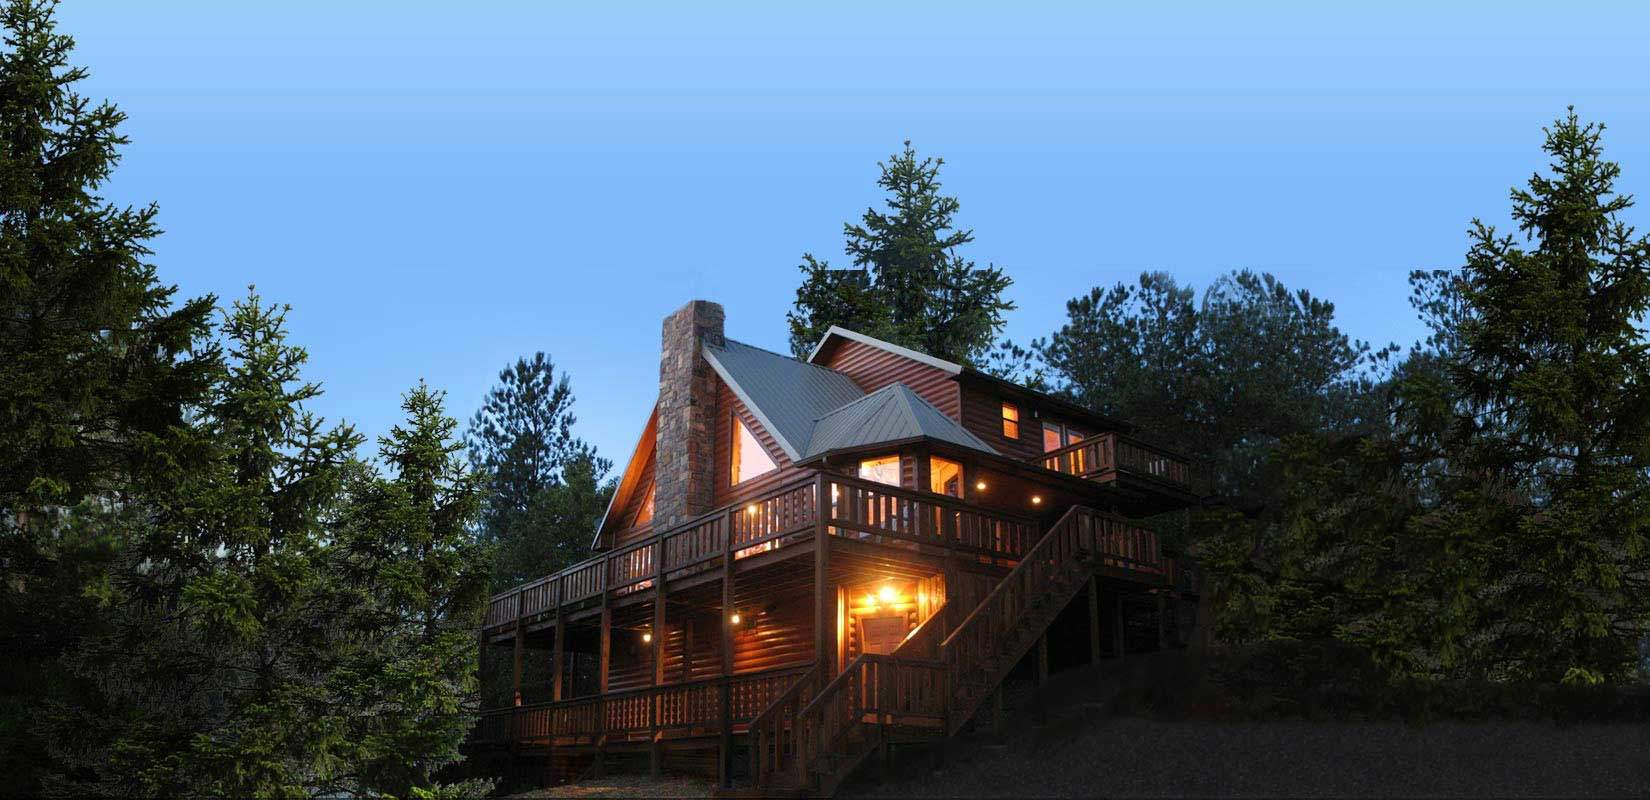 Beavers Bend Cabins Luxury Beavers Bend Oklahoma Cabin